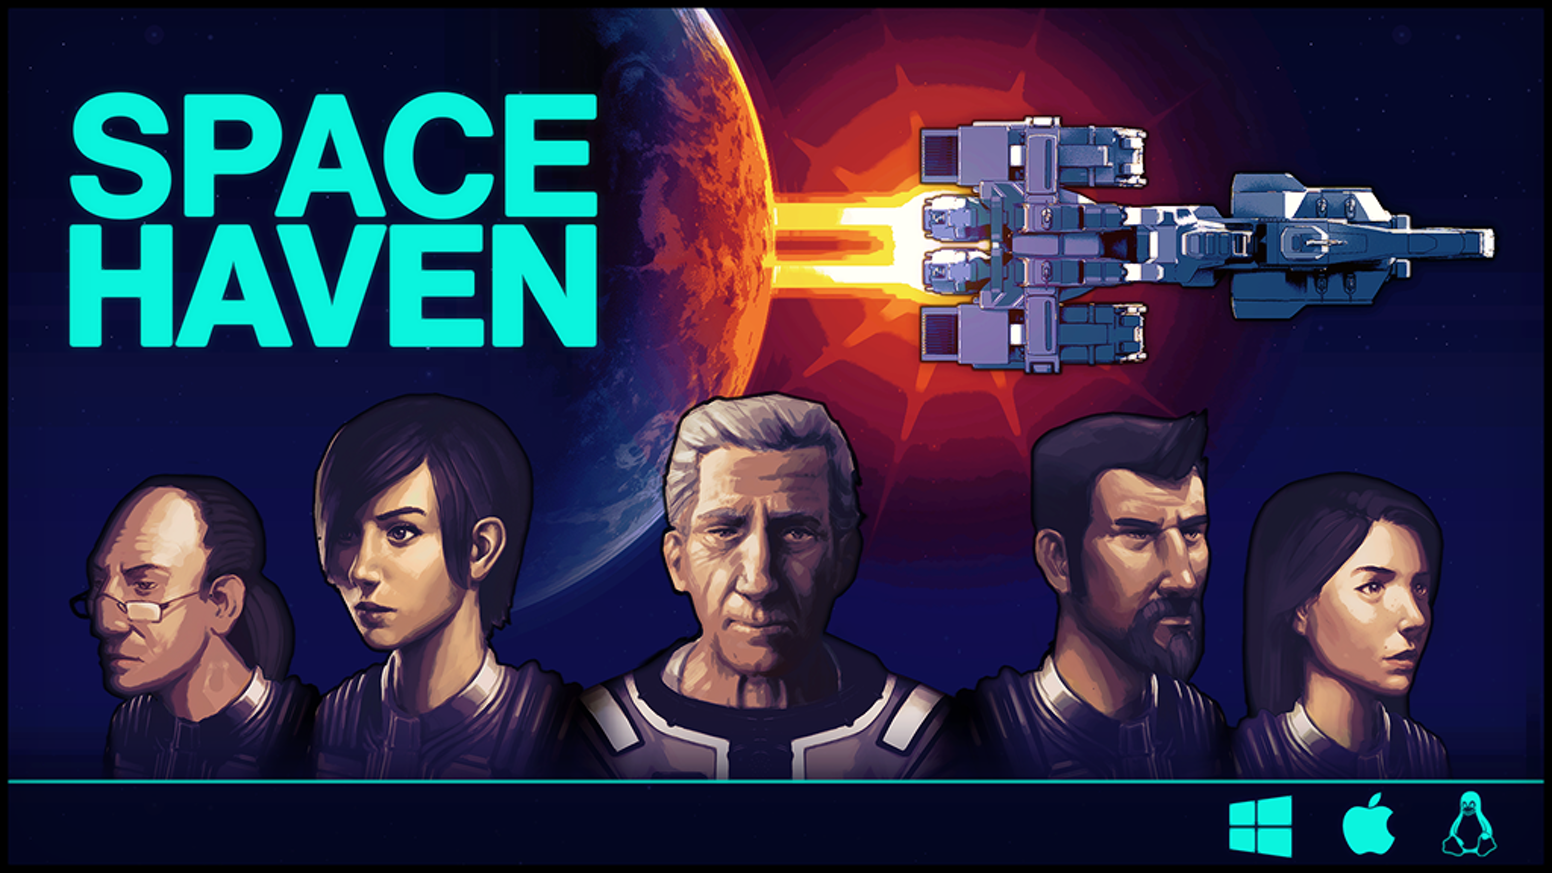 A spaceship colony sim placing you in charge of a ragtag civilian crew in search of a new Earth, designed by and for fans of RimWorld.